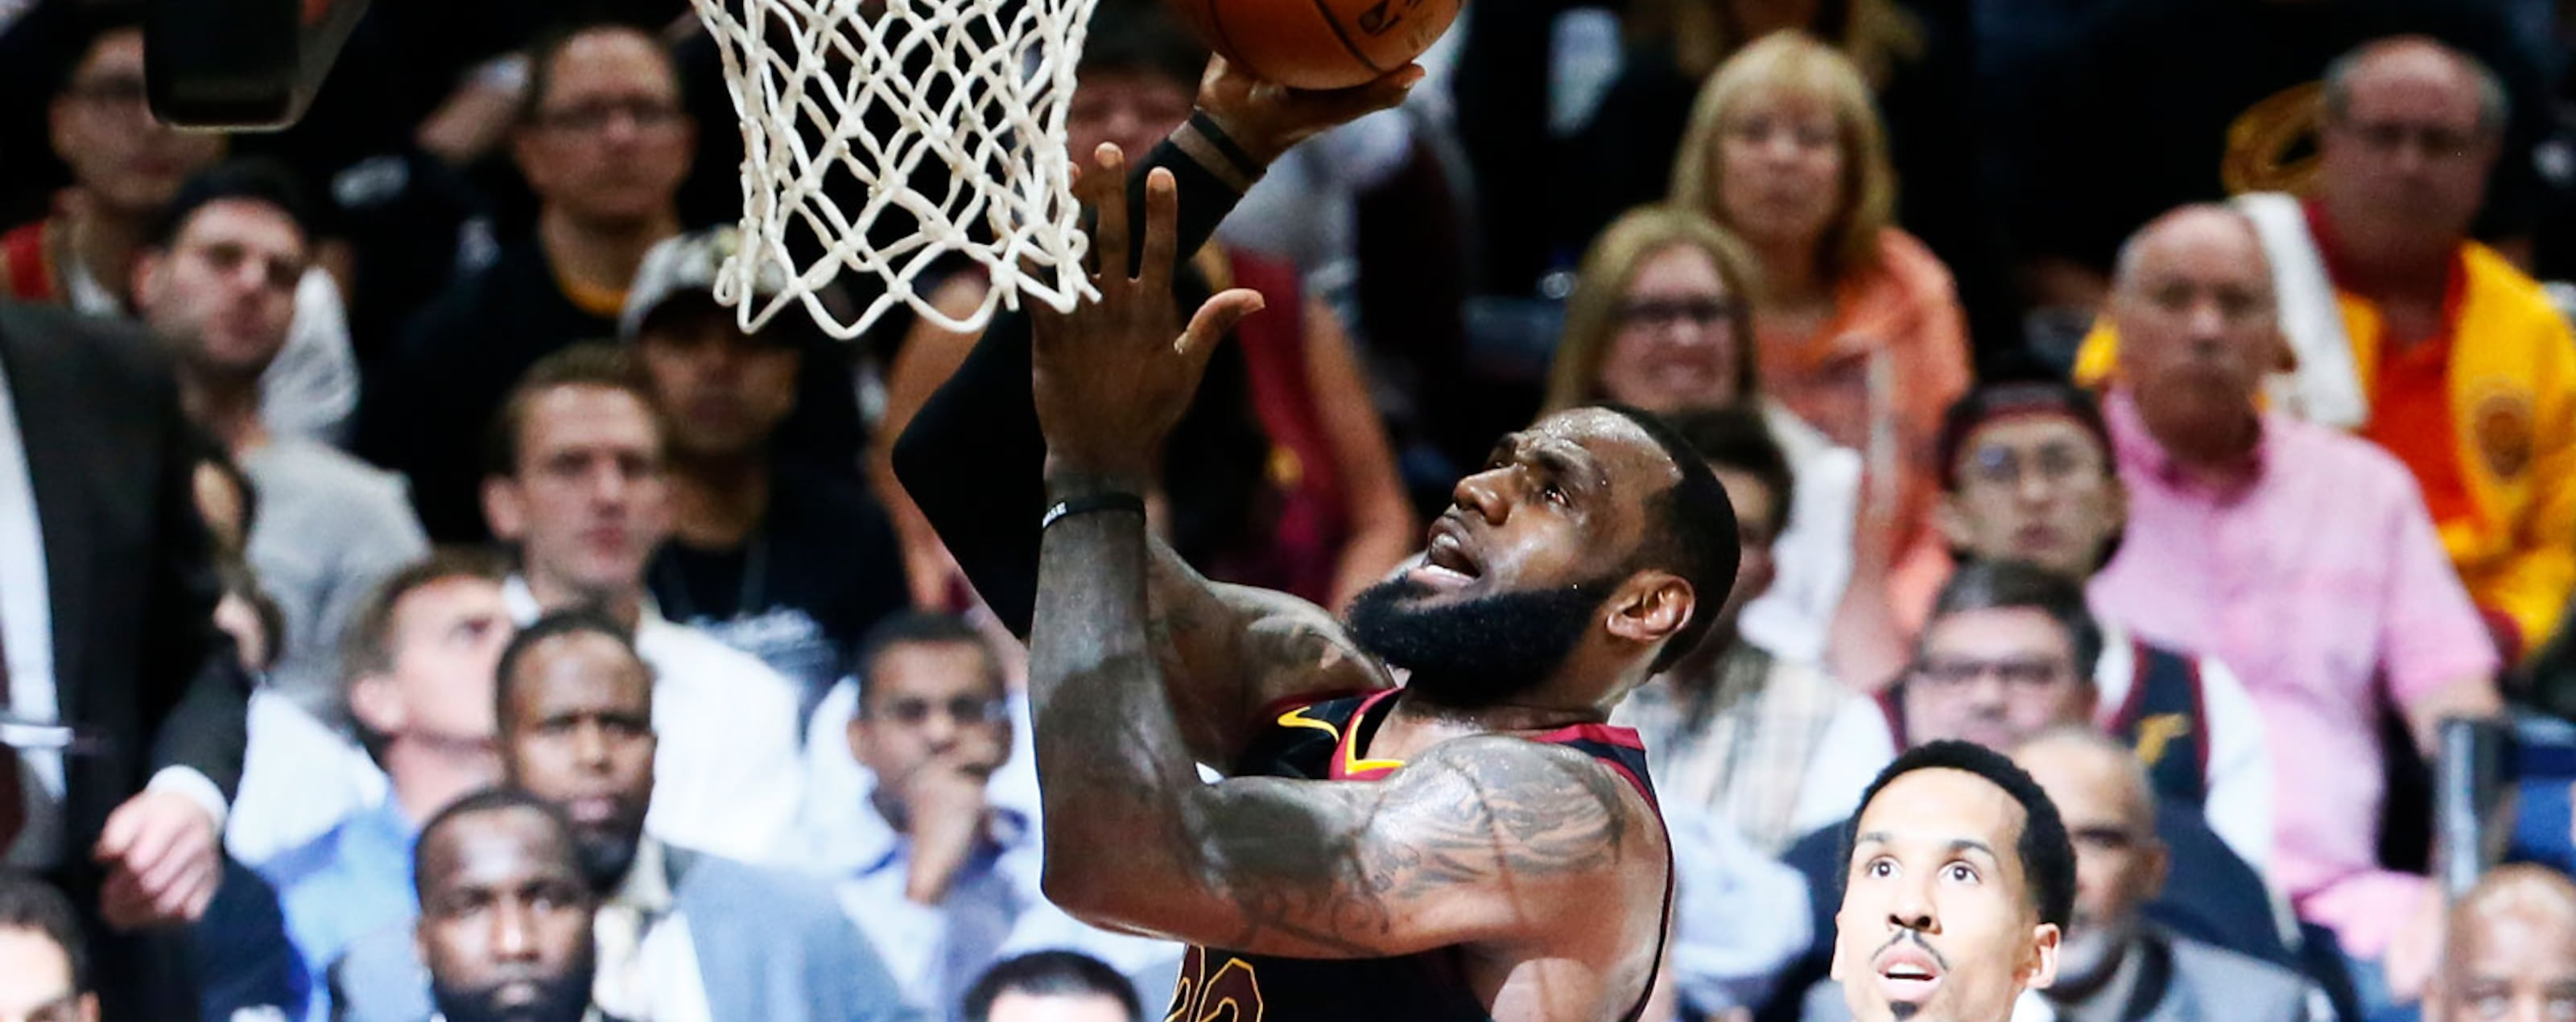 LeBron James #23 of the Cleveland Cavaliers shoots the ball against the Golden State Warriors in Game Four of the 2018 NBA Finals won 108-85 by the Golden State Warriors over the Cleveland Cavaliers at the Quicken Loans Arena on June 6, 2018 in Cleveland,